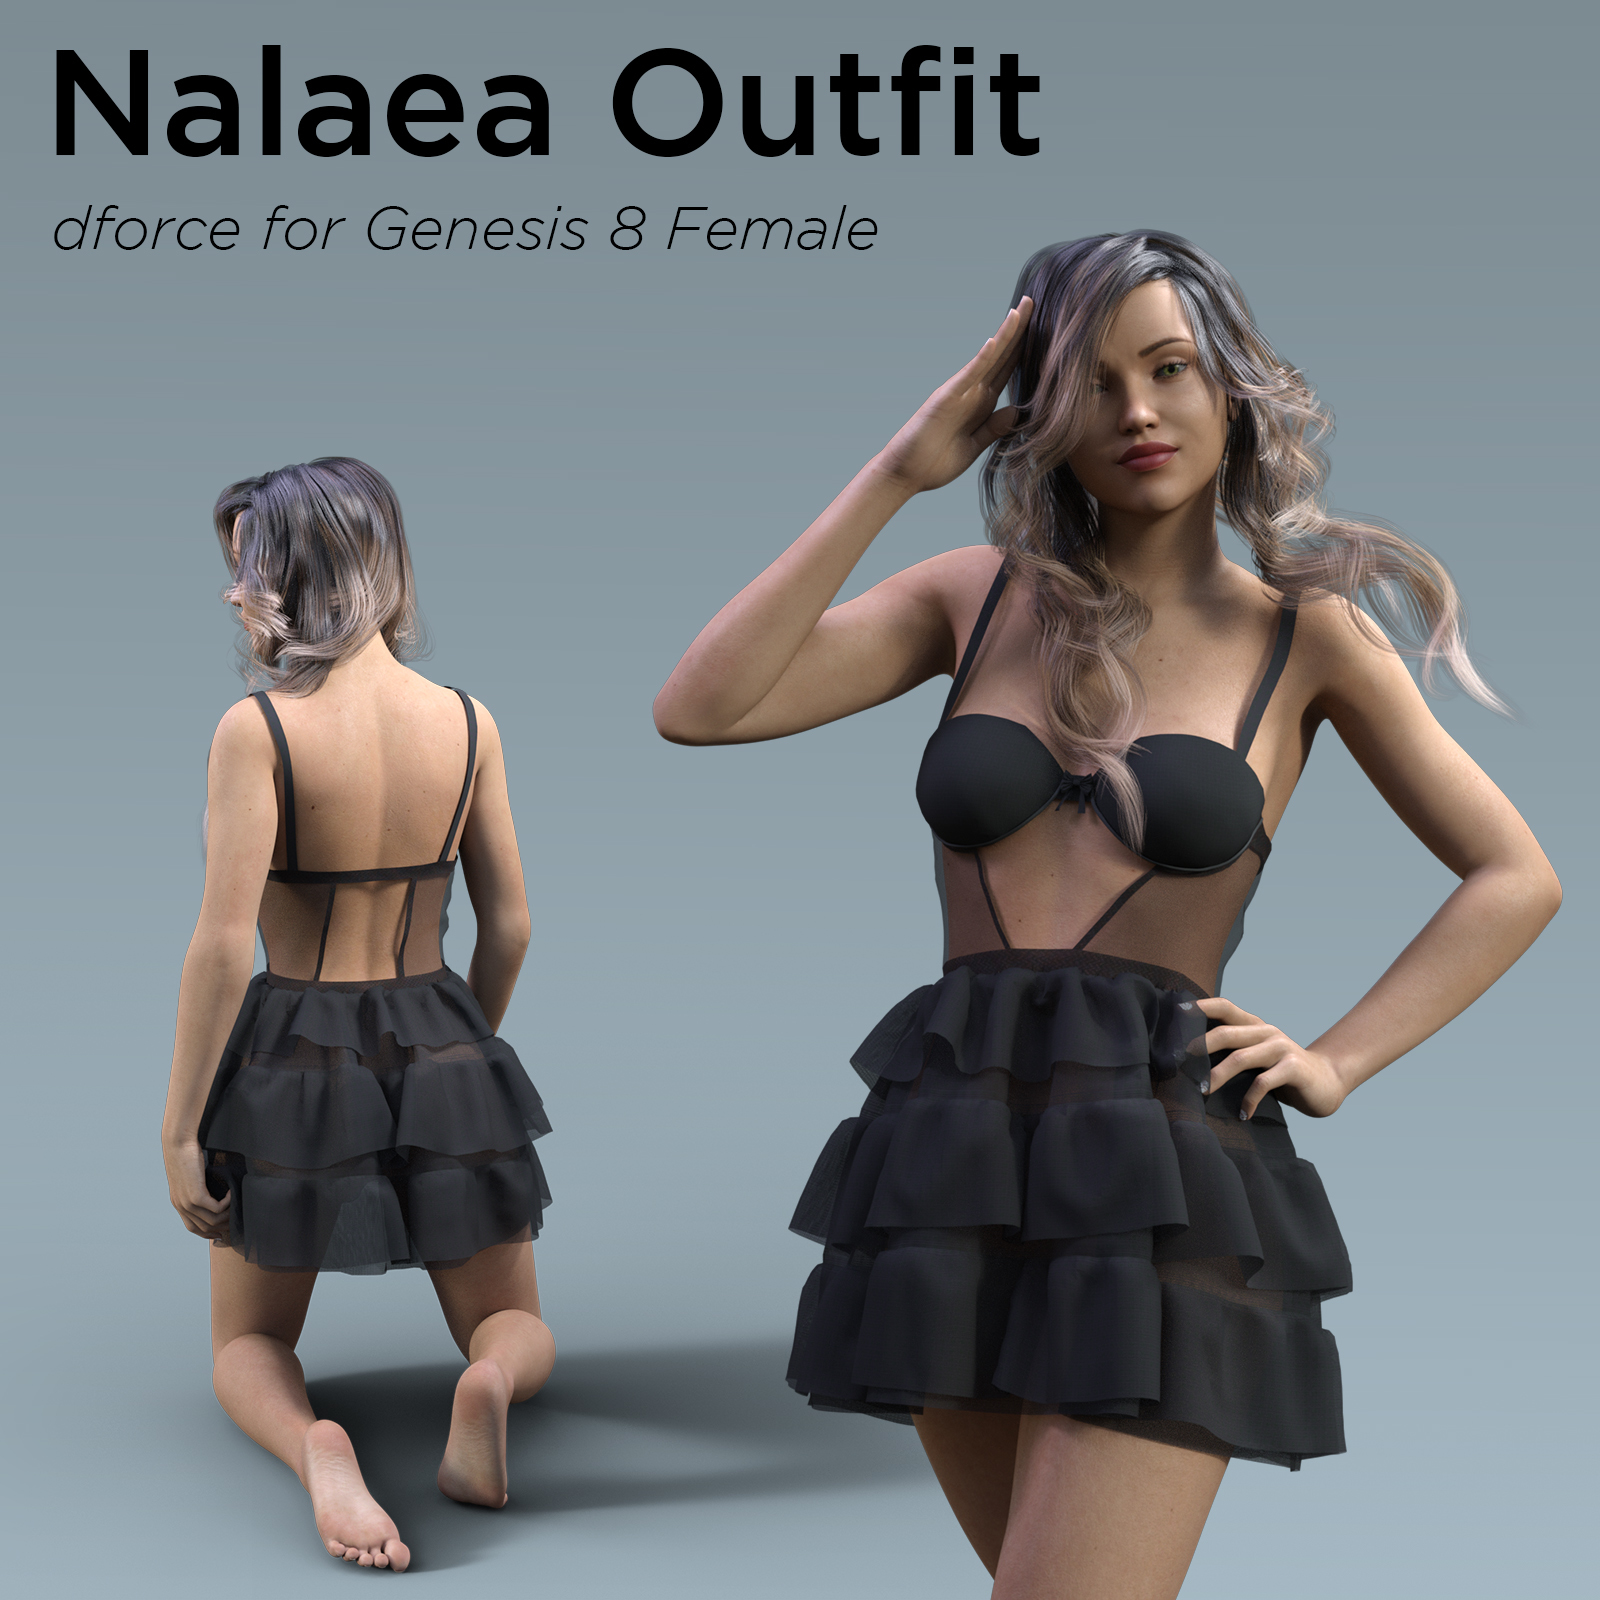 Nalaea Outfit for Genesis 8 Female by Mella_via